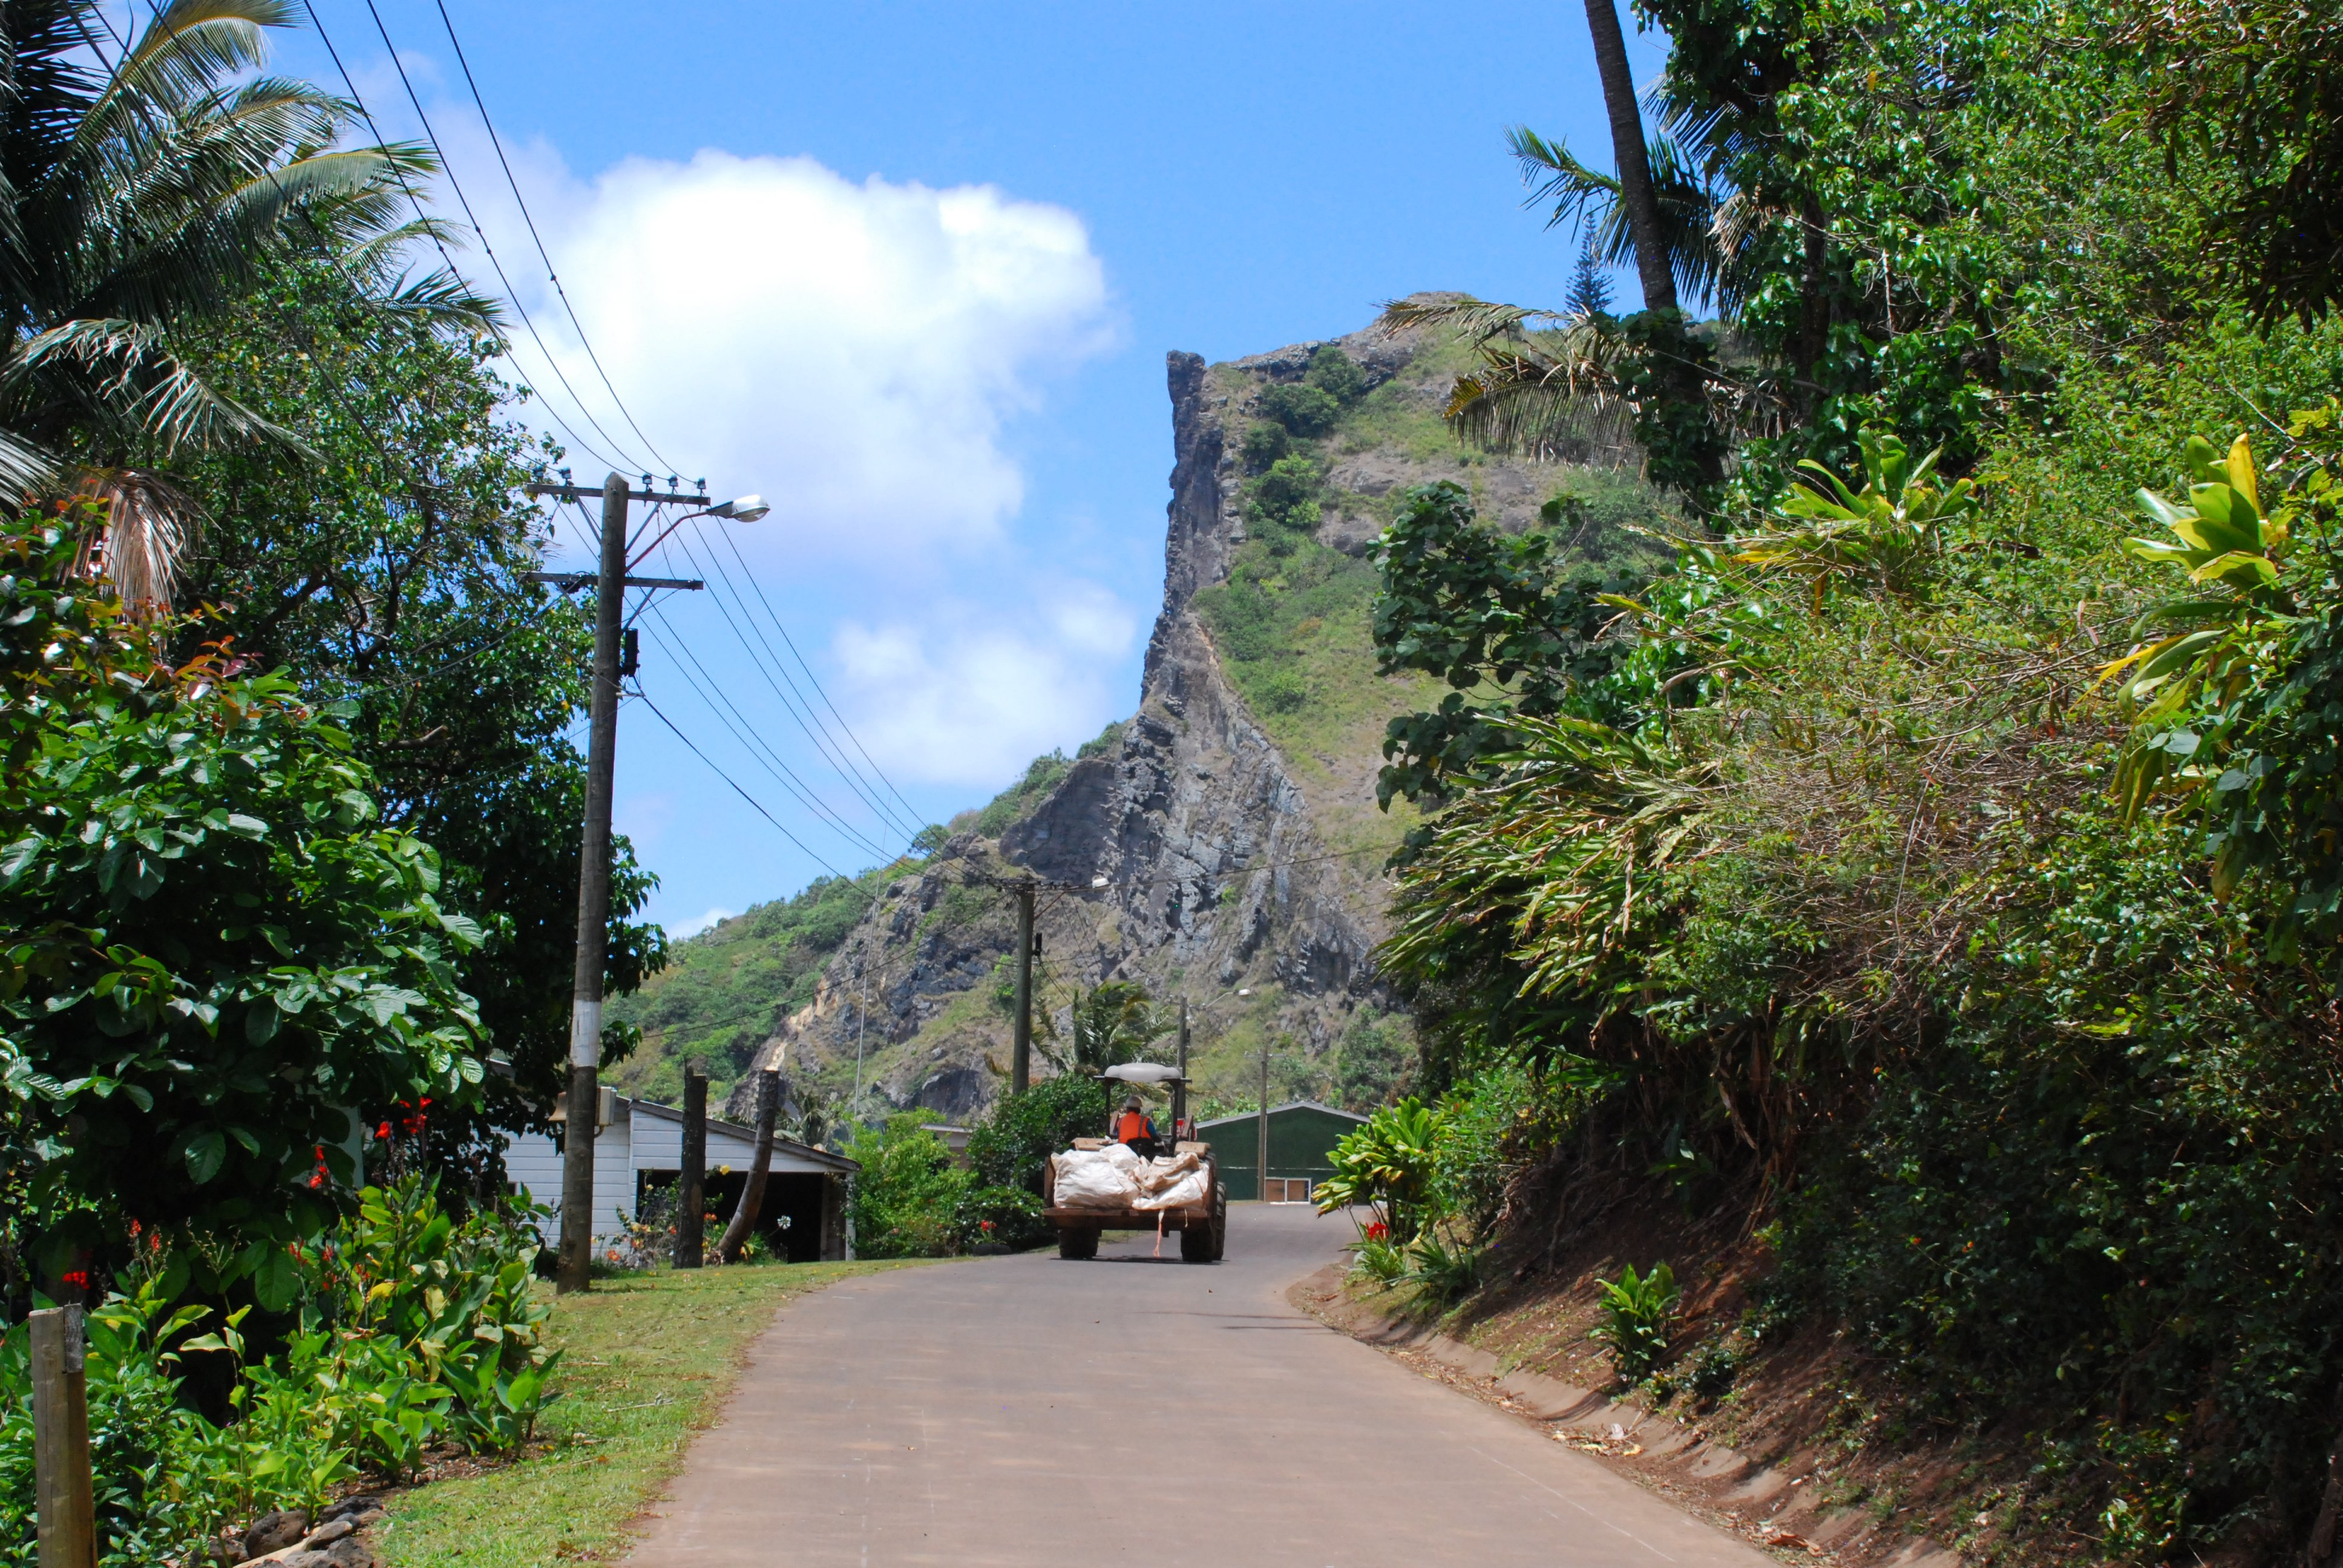 The main road on Pitcairn Island - Photo Credit: Lee Mylne